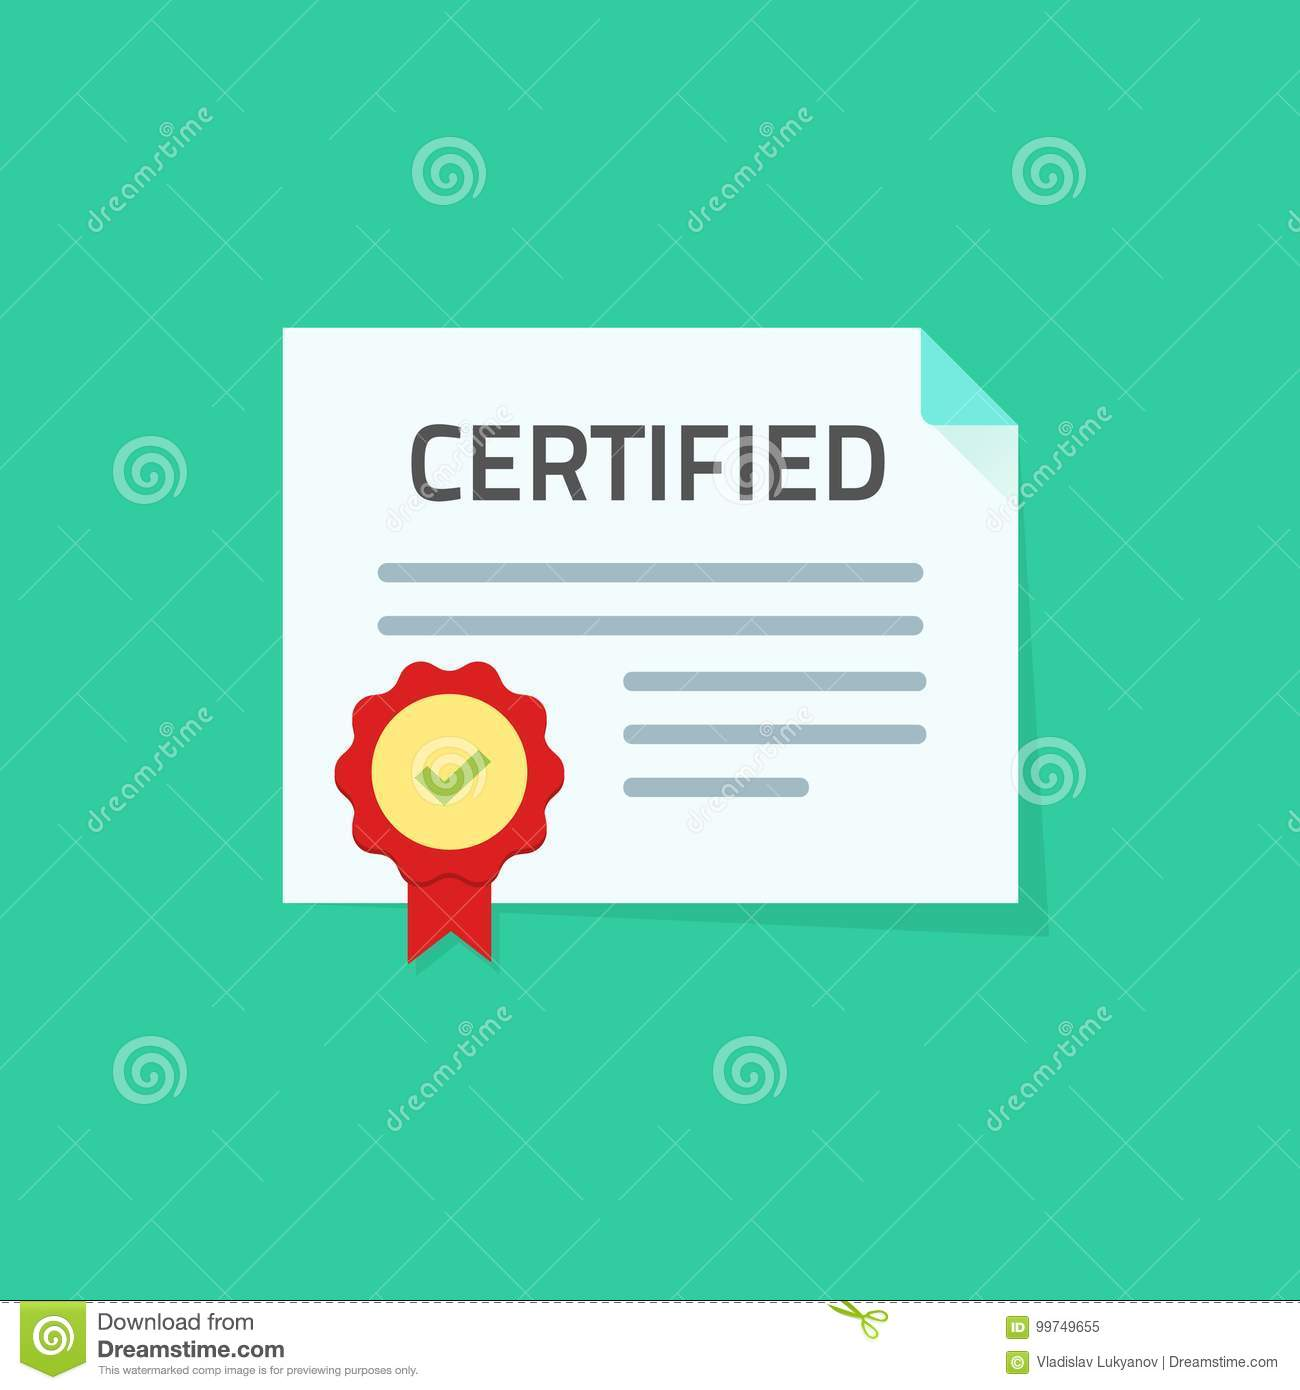 Certificate Icon Vector Illustration Flat Paper Document With Approved Seal Or Stamp And Certified